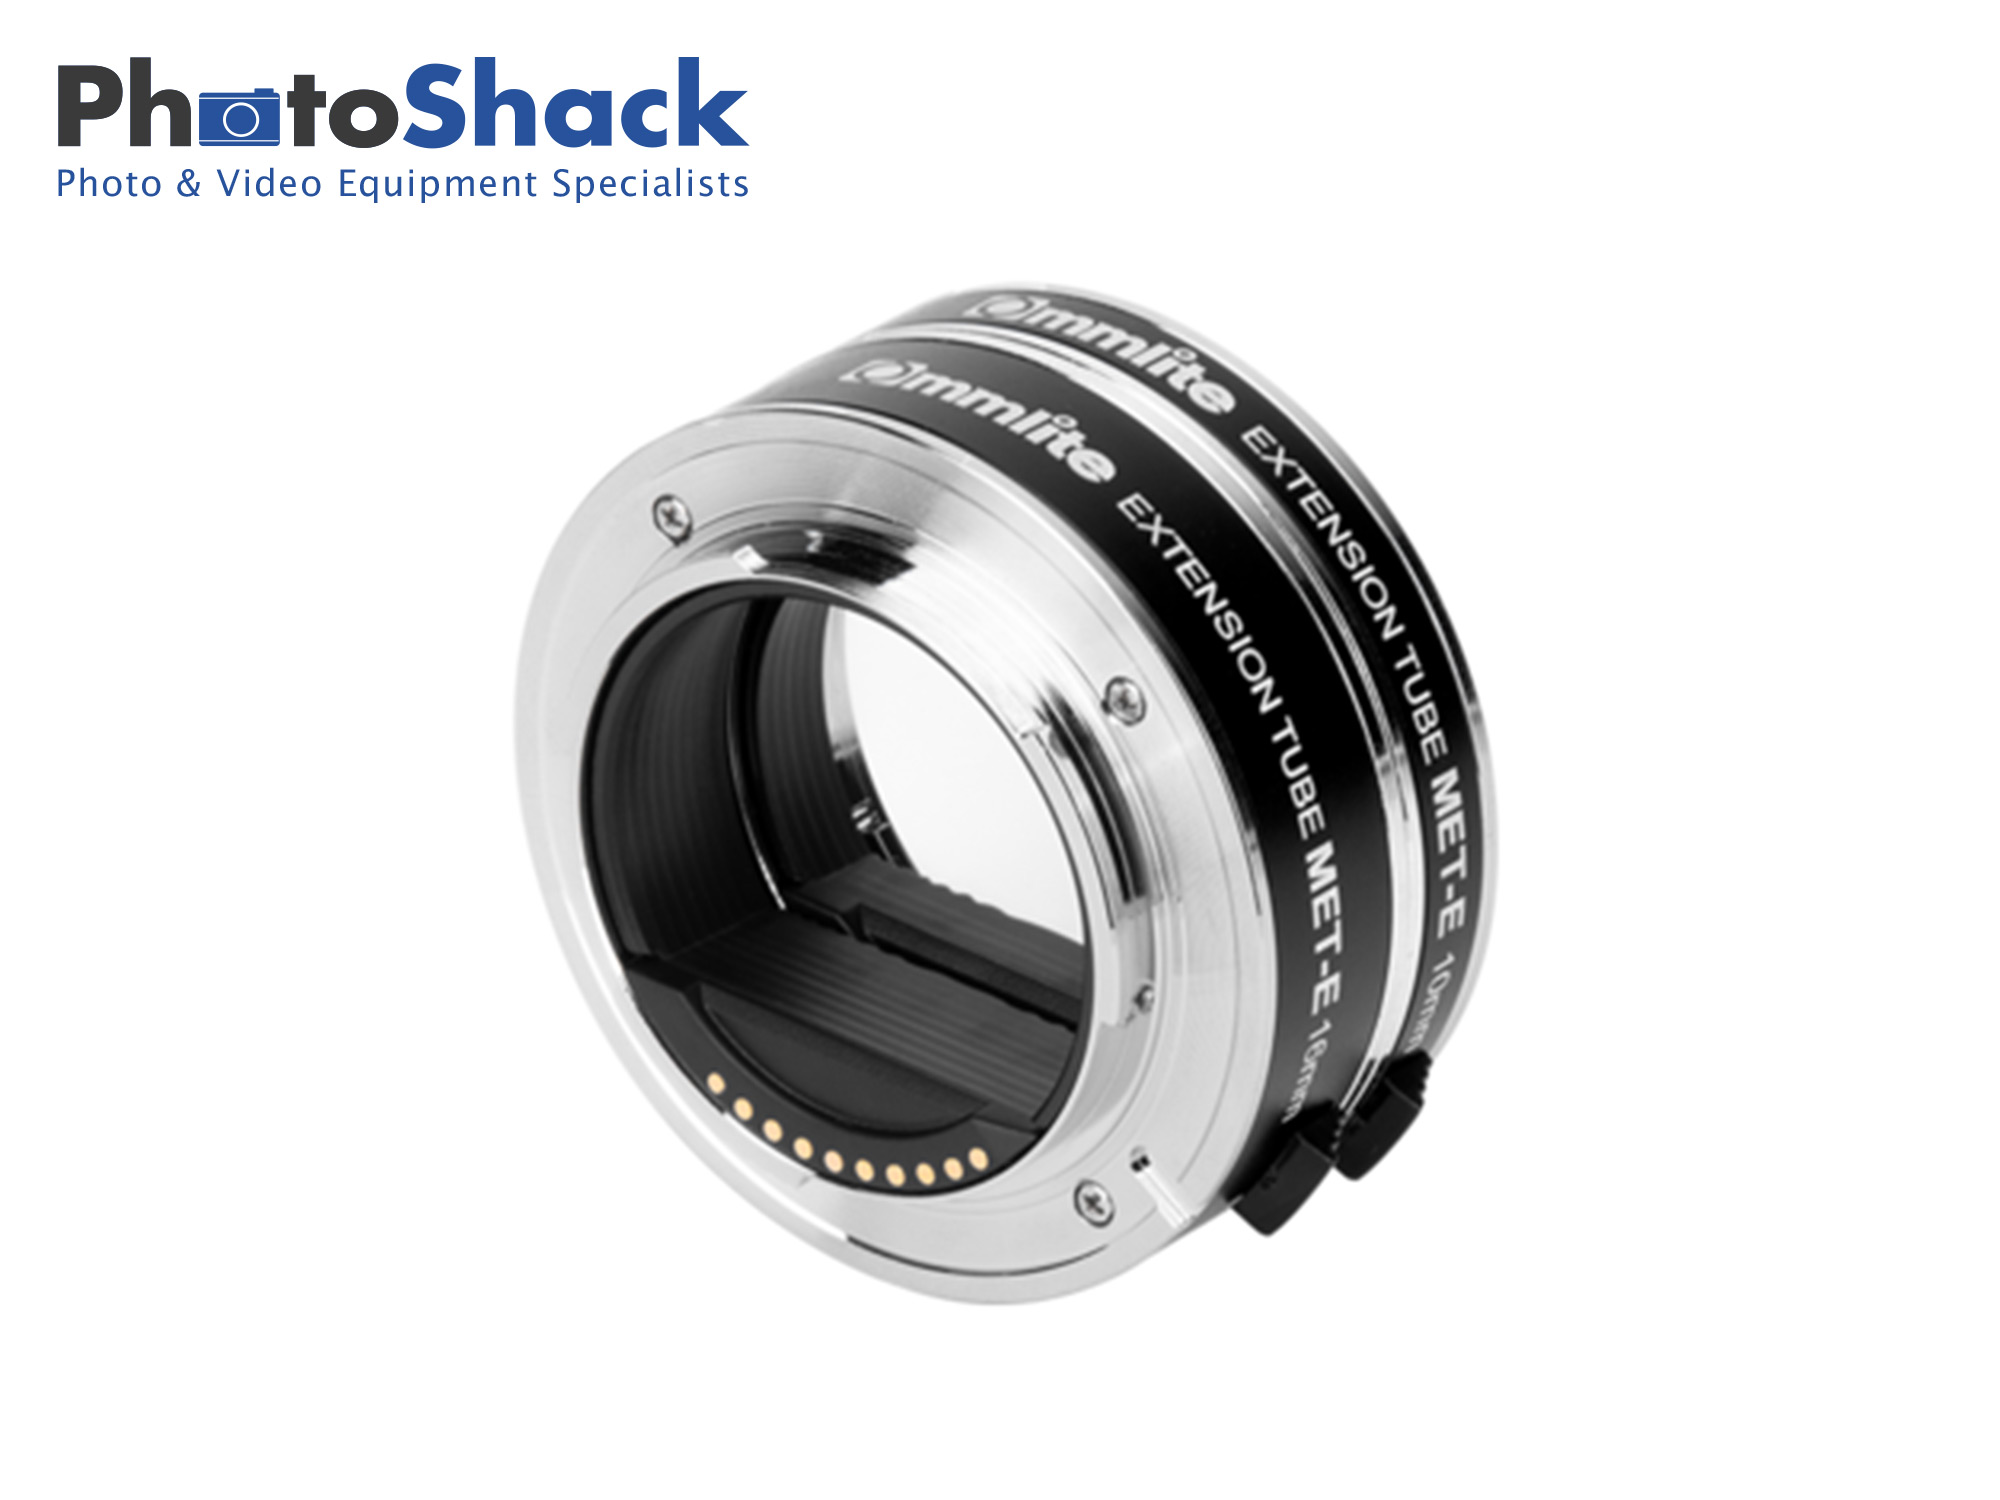 Commlite Automatic Macro Extension Tube for Sony E-Mount Cameras